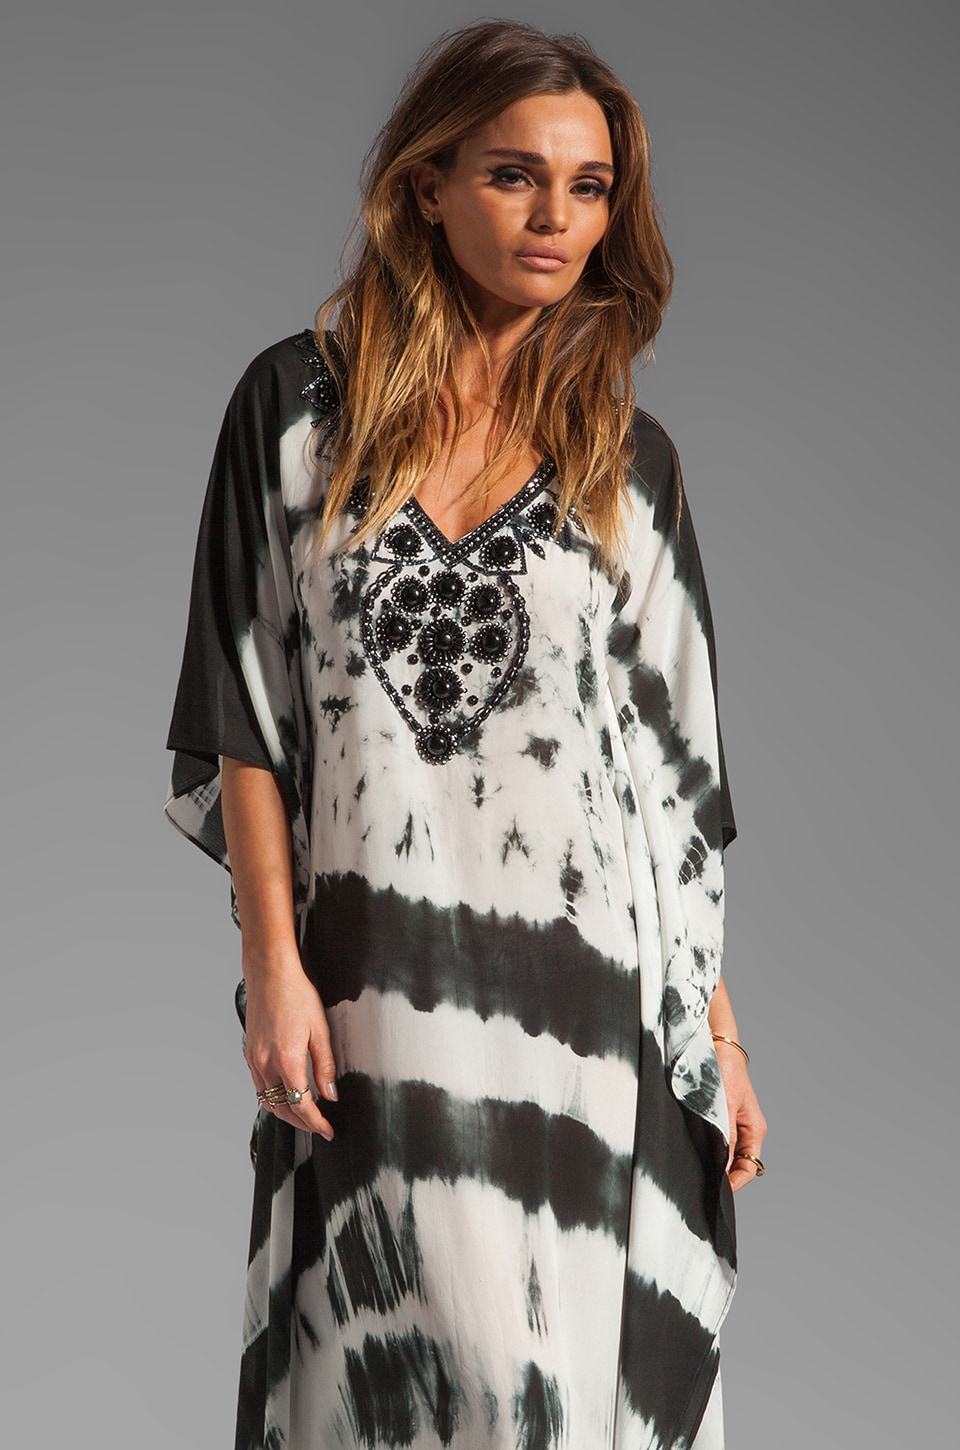 Karina Grimaldi Nassau Long Caftan in Black and White Tie Dye